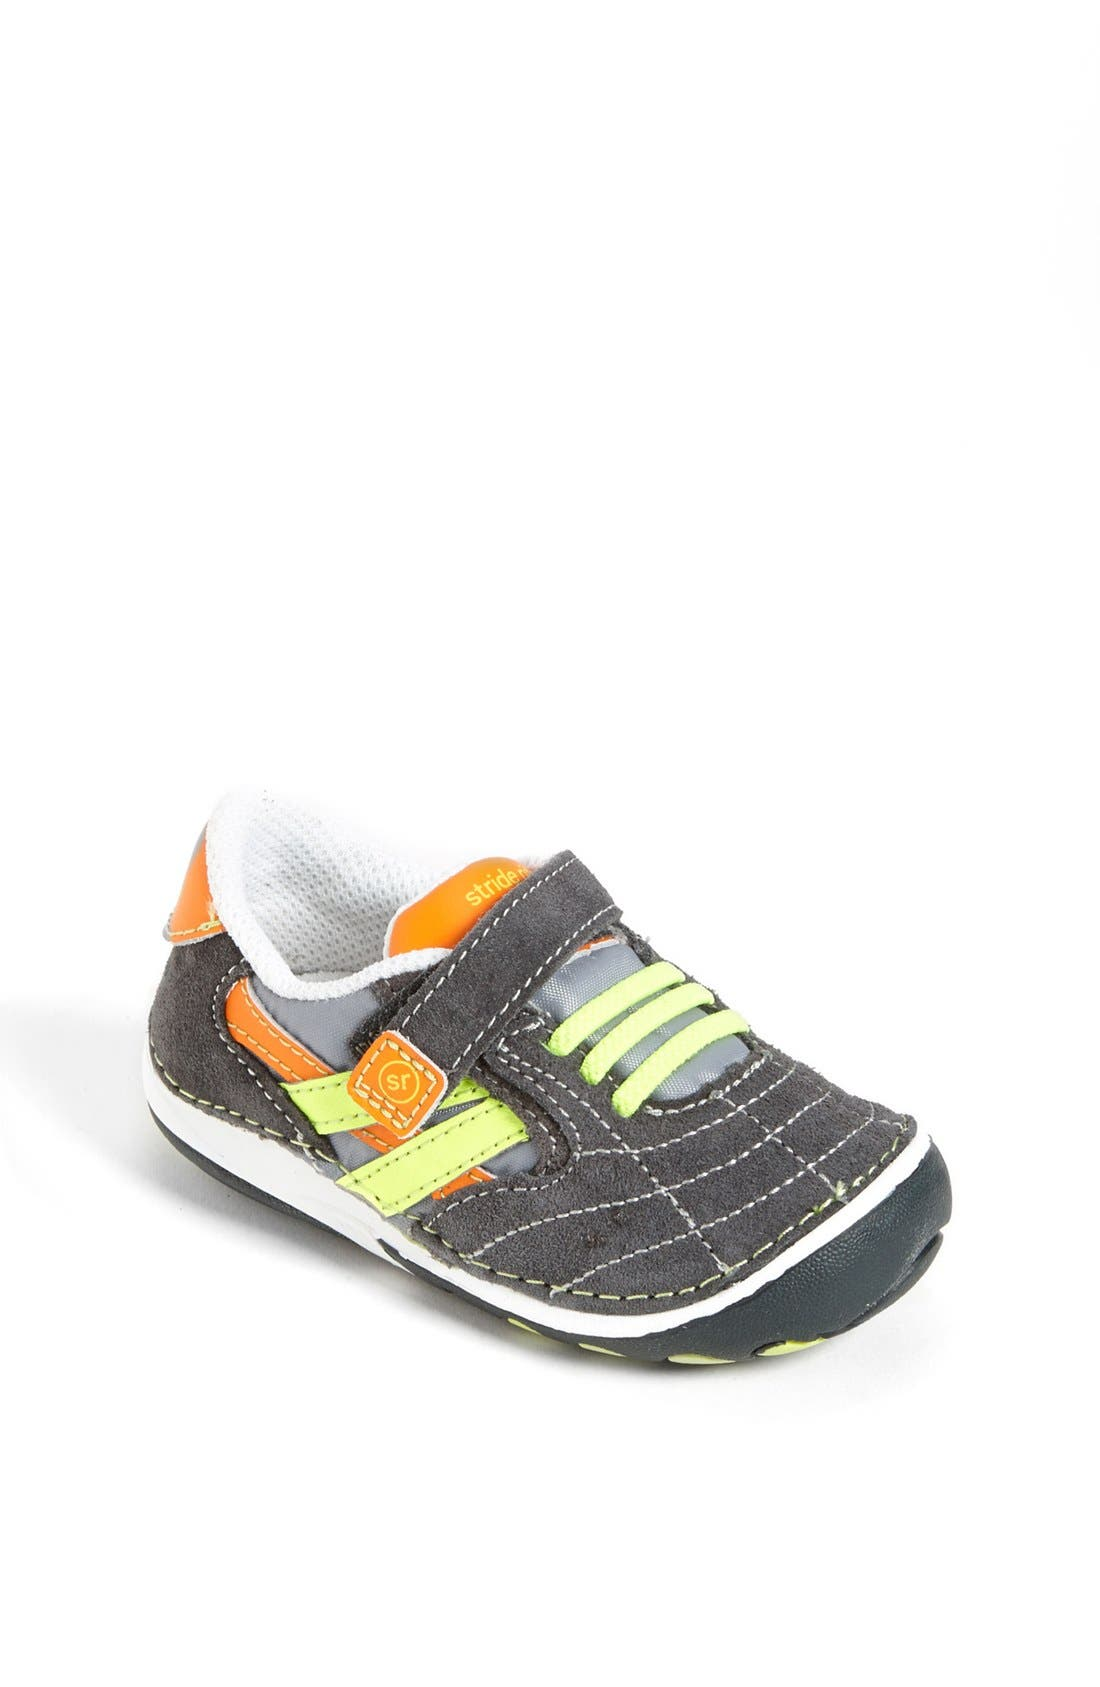 Alternate Image 1 Selected - Stride Rite 'Jason' Sneaker (Baby & Walker)